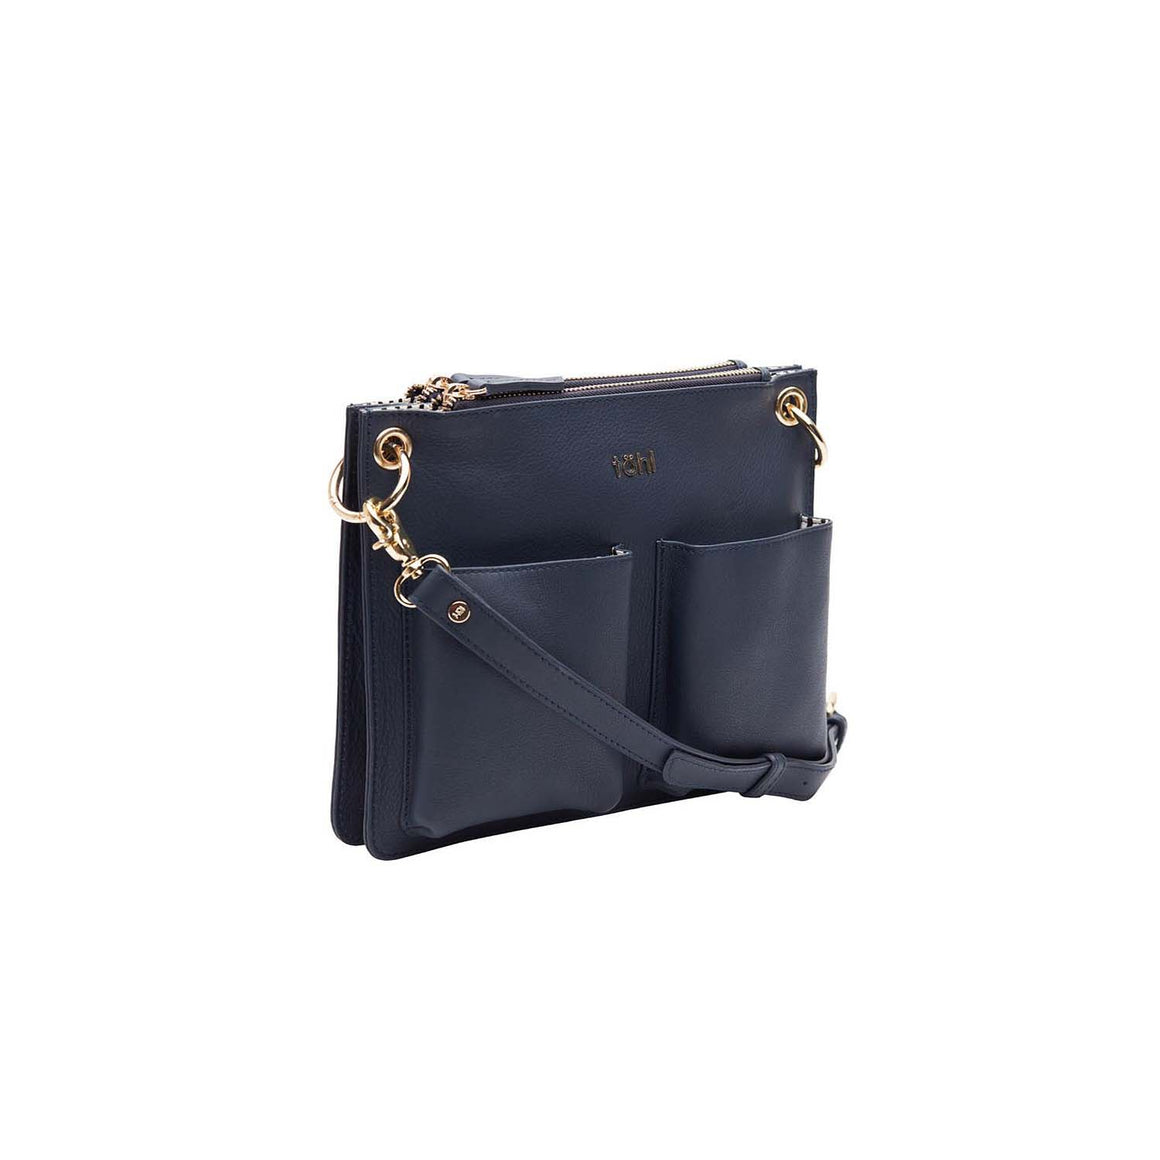 SG 0025 - TOHL LENZEIN WOMEN'S SLING & CROSSBODY BAG - INDIGO BLUE